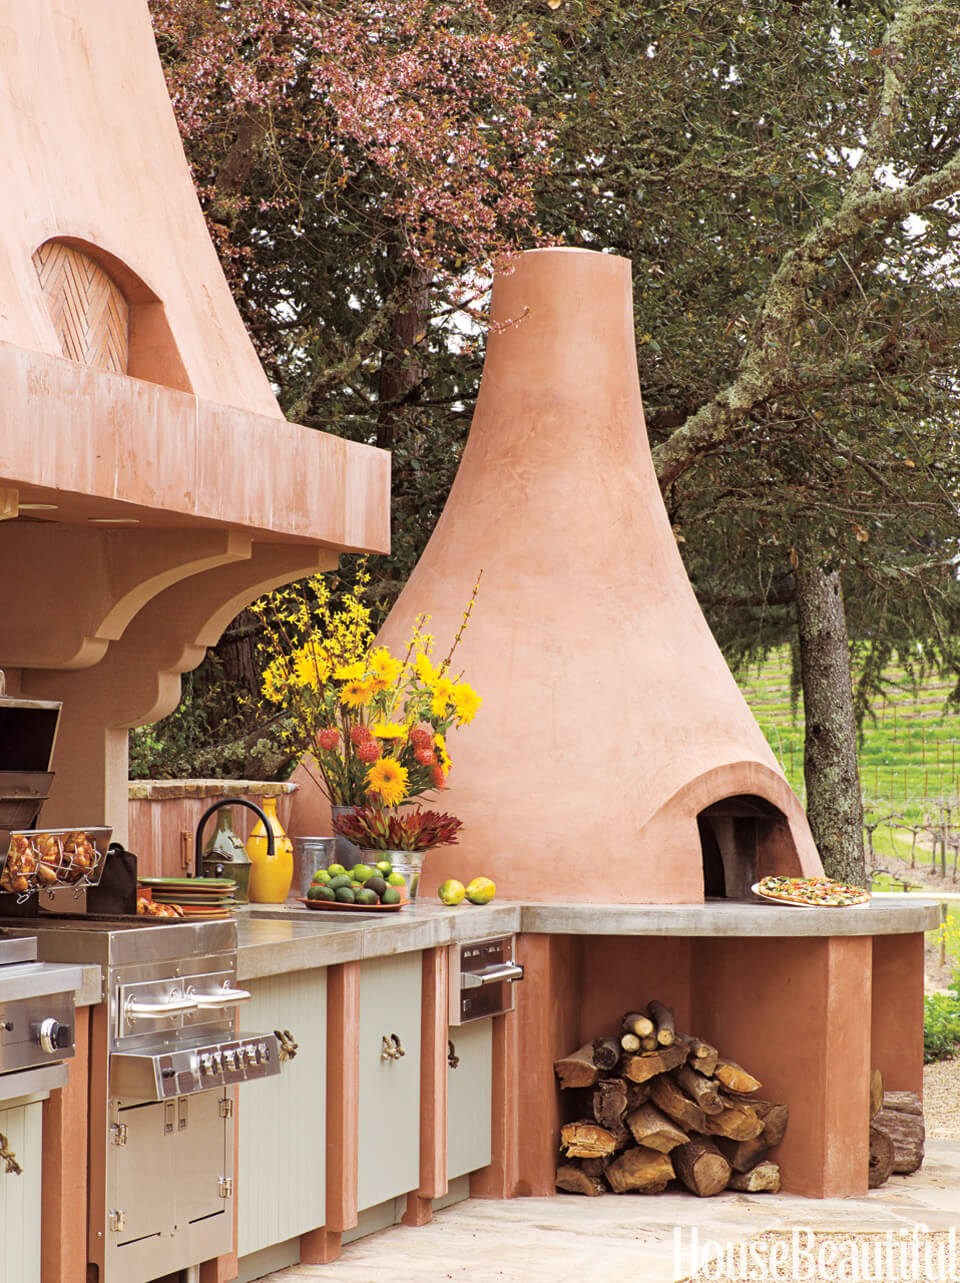 Terra Cotta Outdoor Kitchen With Pizza Oven